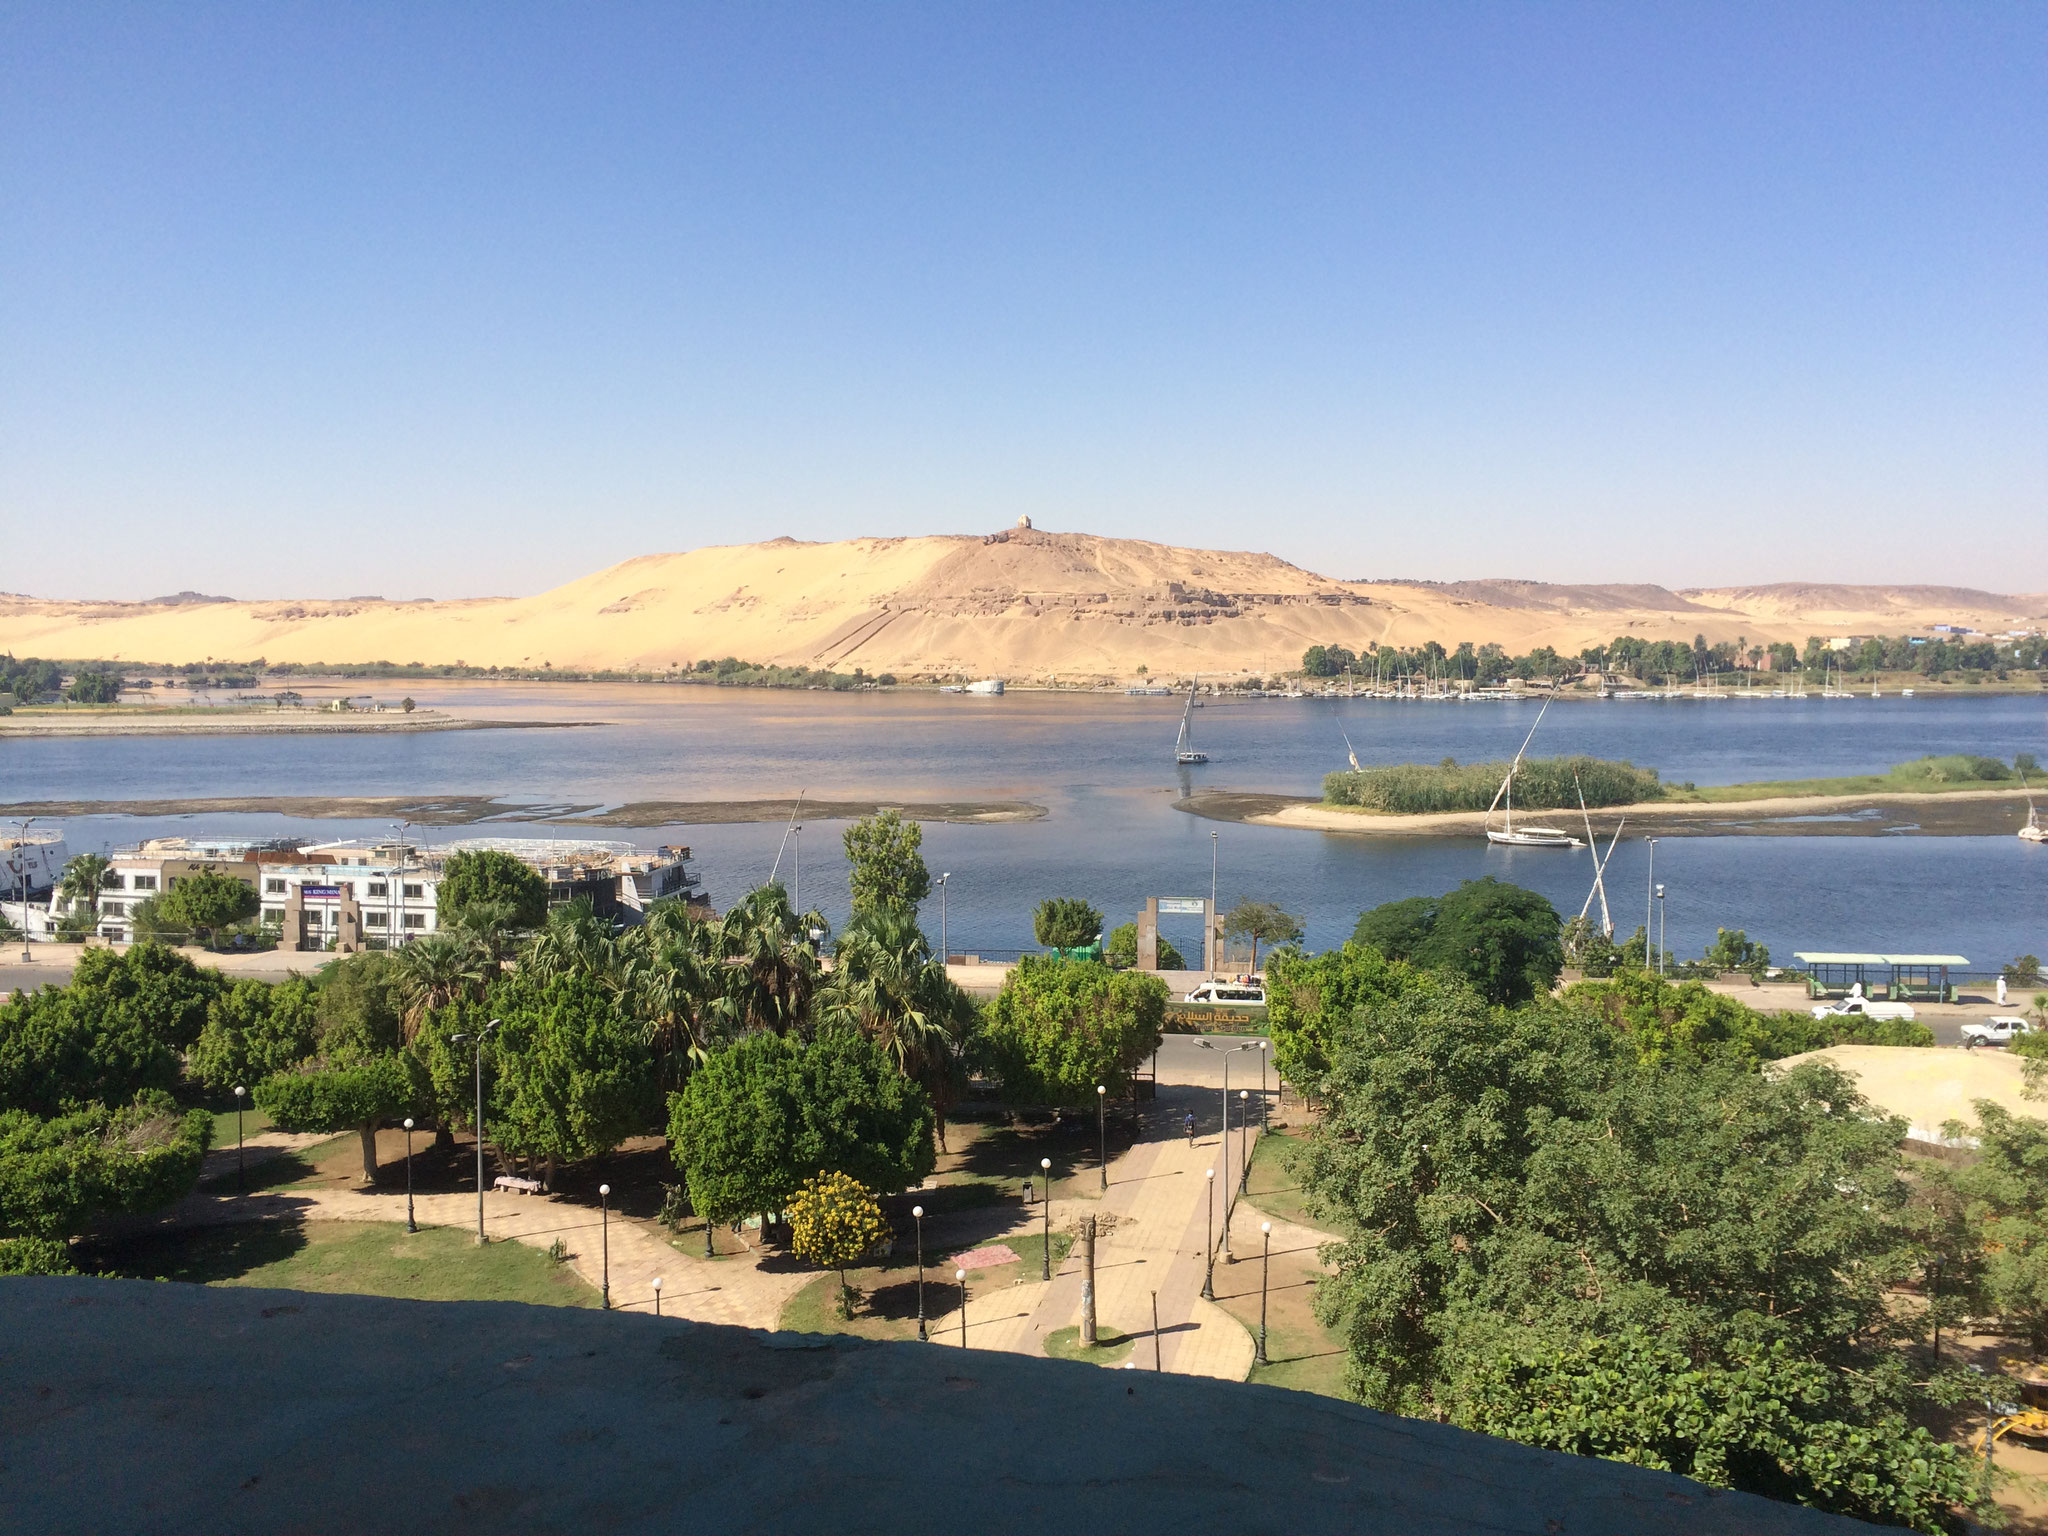 Aswan, the wonderful